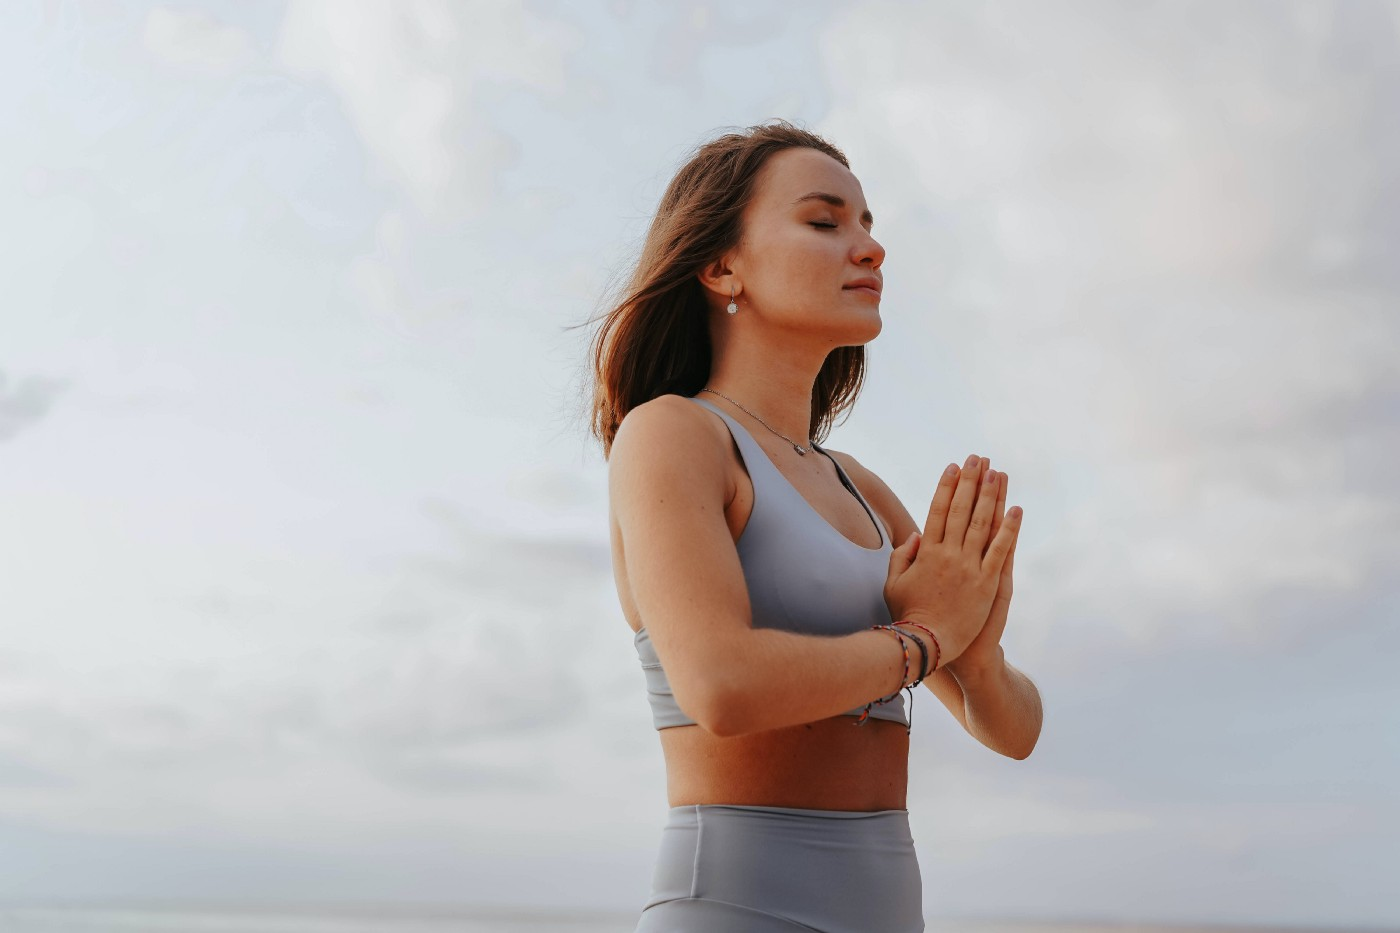 Woman meditating in front of open skies